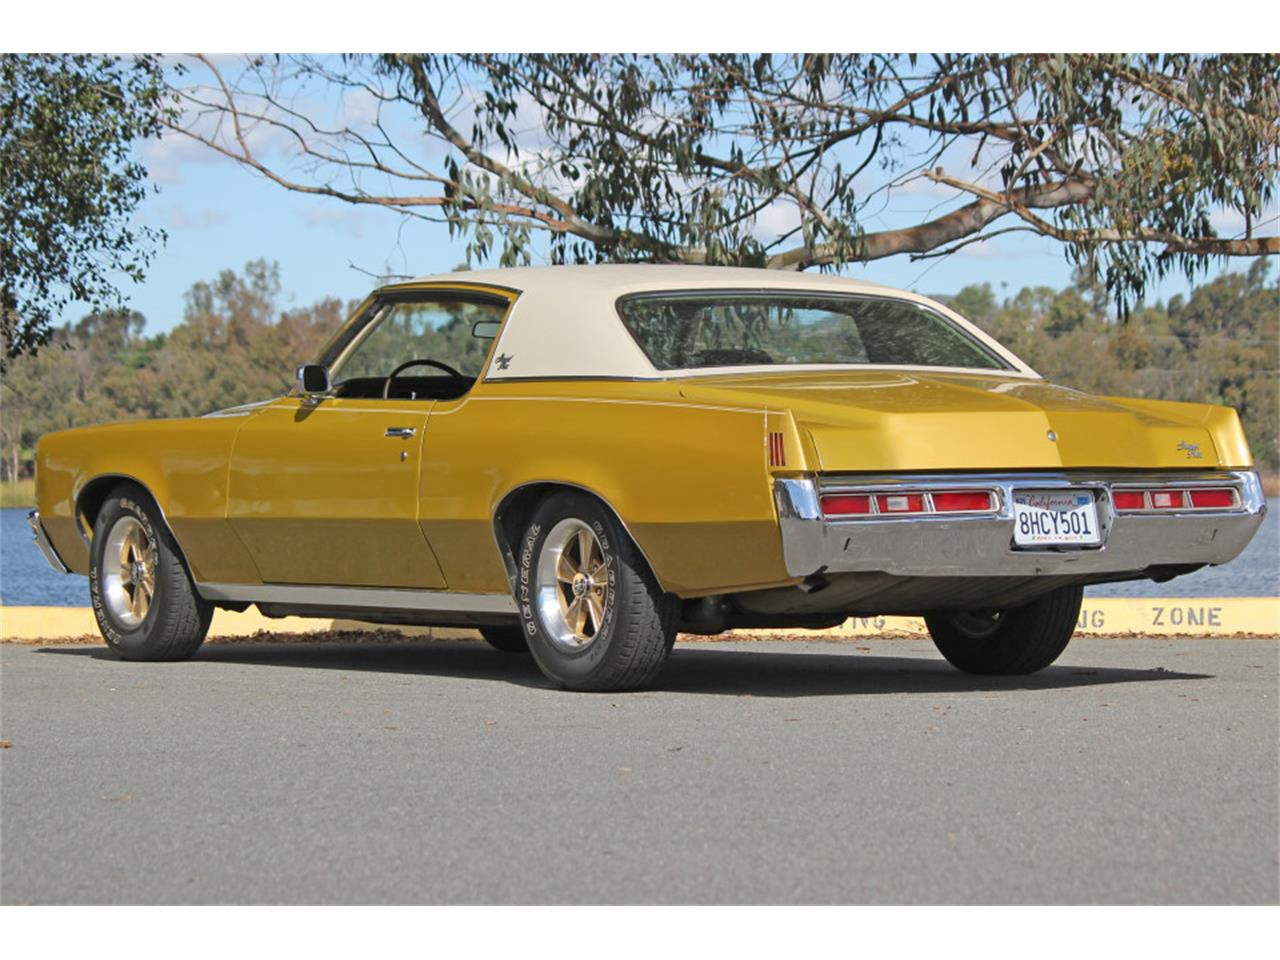 Large Picture of 1972 Pontiac Grand Prix located in SAN DIEGO  California - $20,900.00 Offered by Precious Metals - PGU5